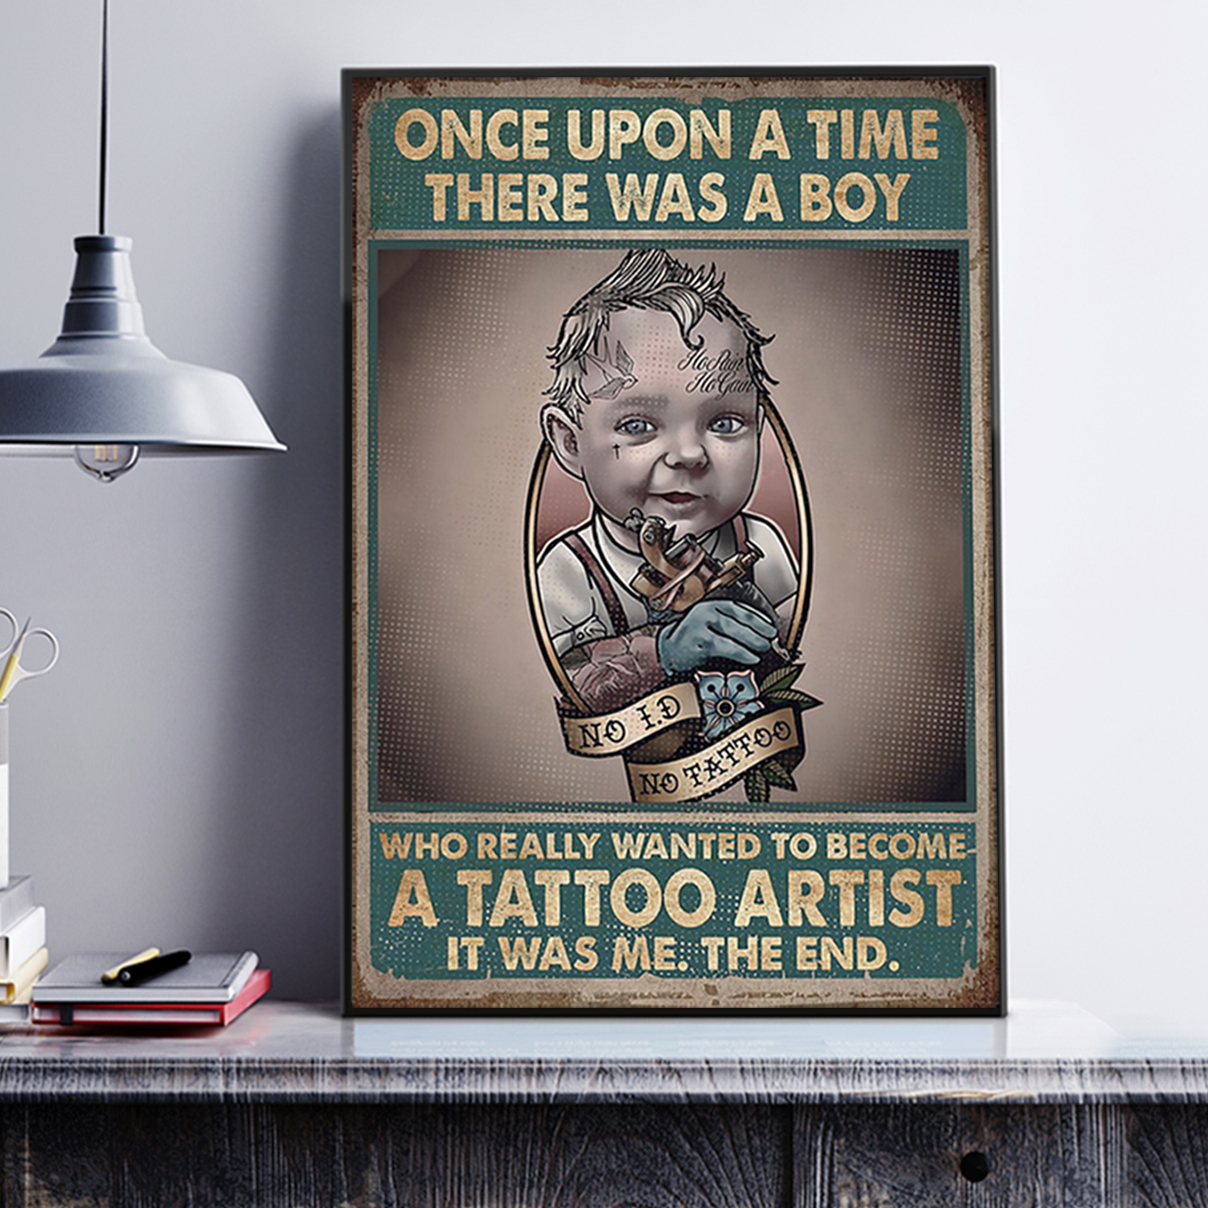 Once upon a time there was a boy who really wanted to become a tattoo artist poster A2